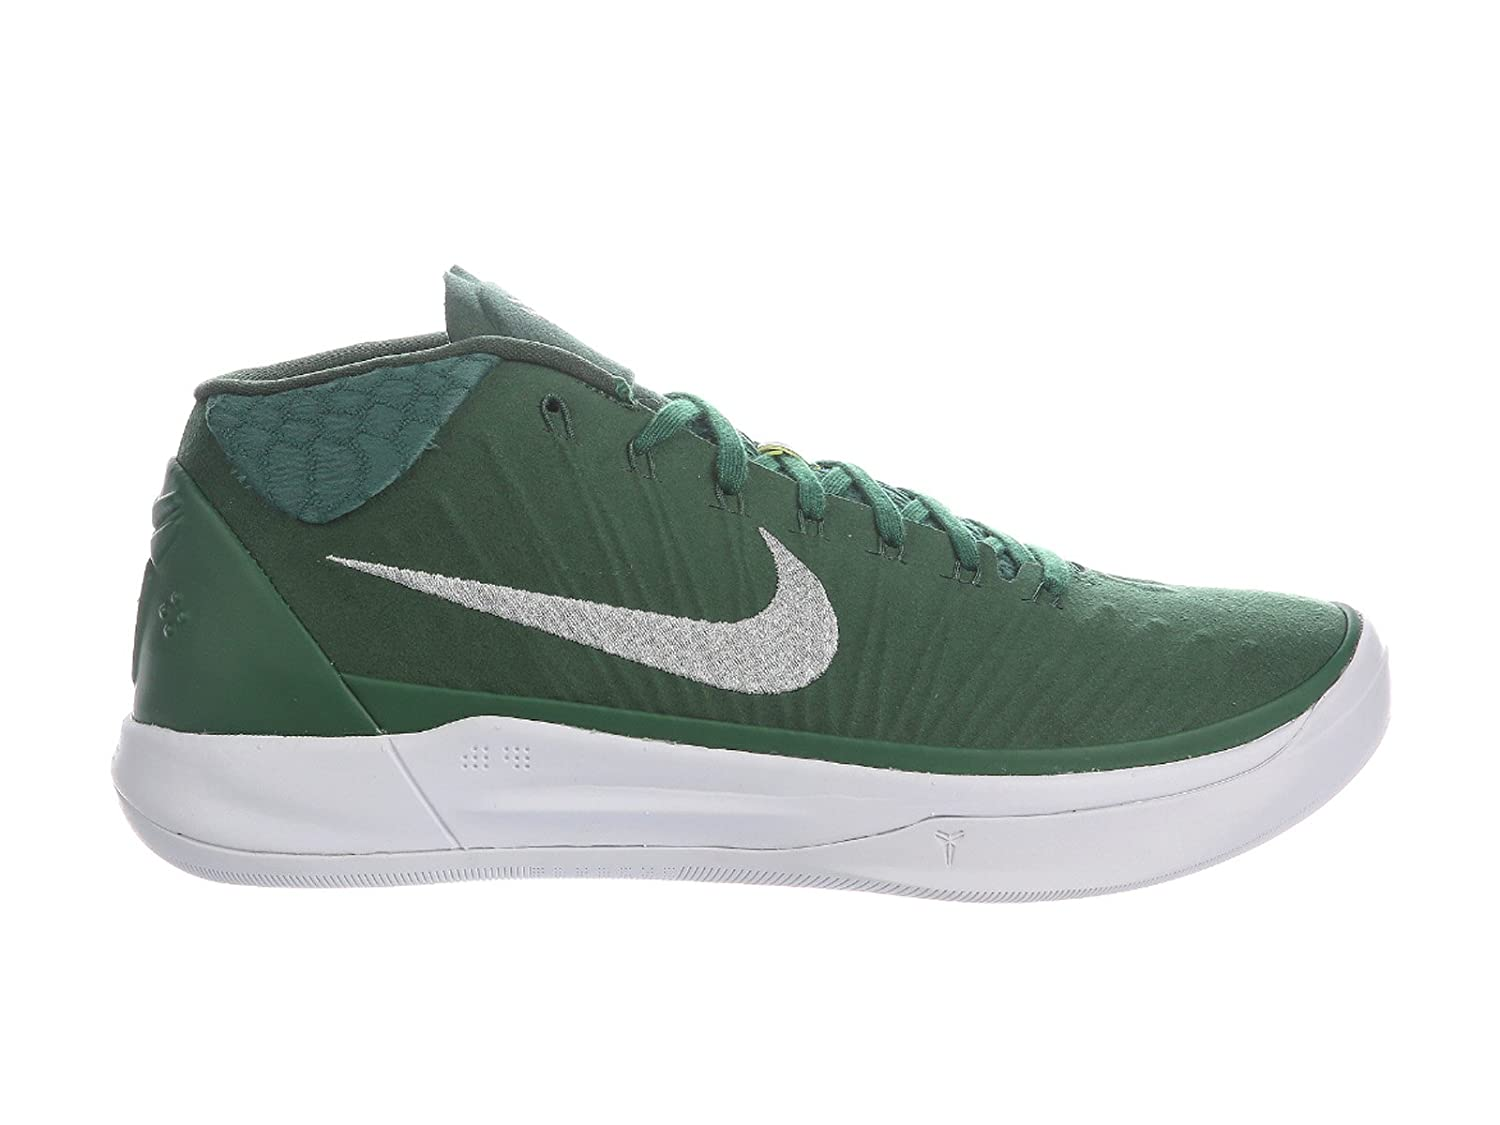 official photos 428b8 32ed6 Amazon.com | Nike Men's Kobe A.D. Gorge Green/Metallic ...